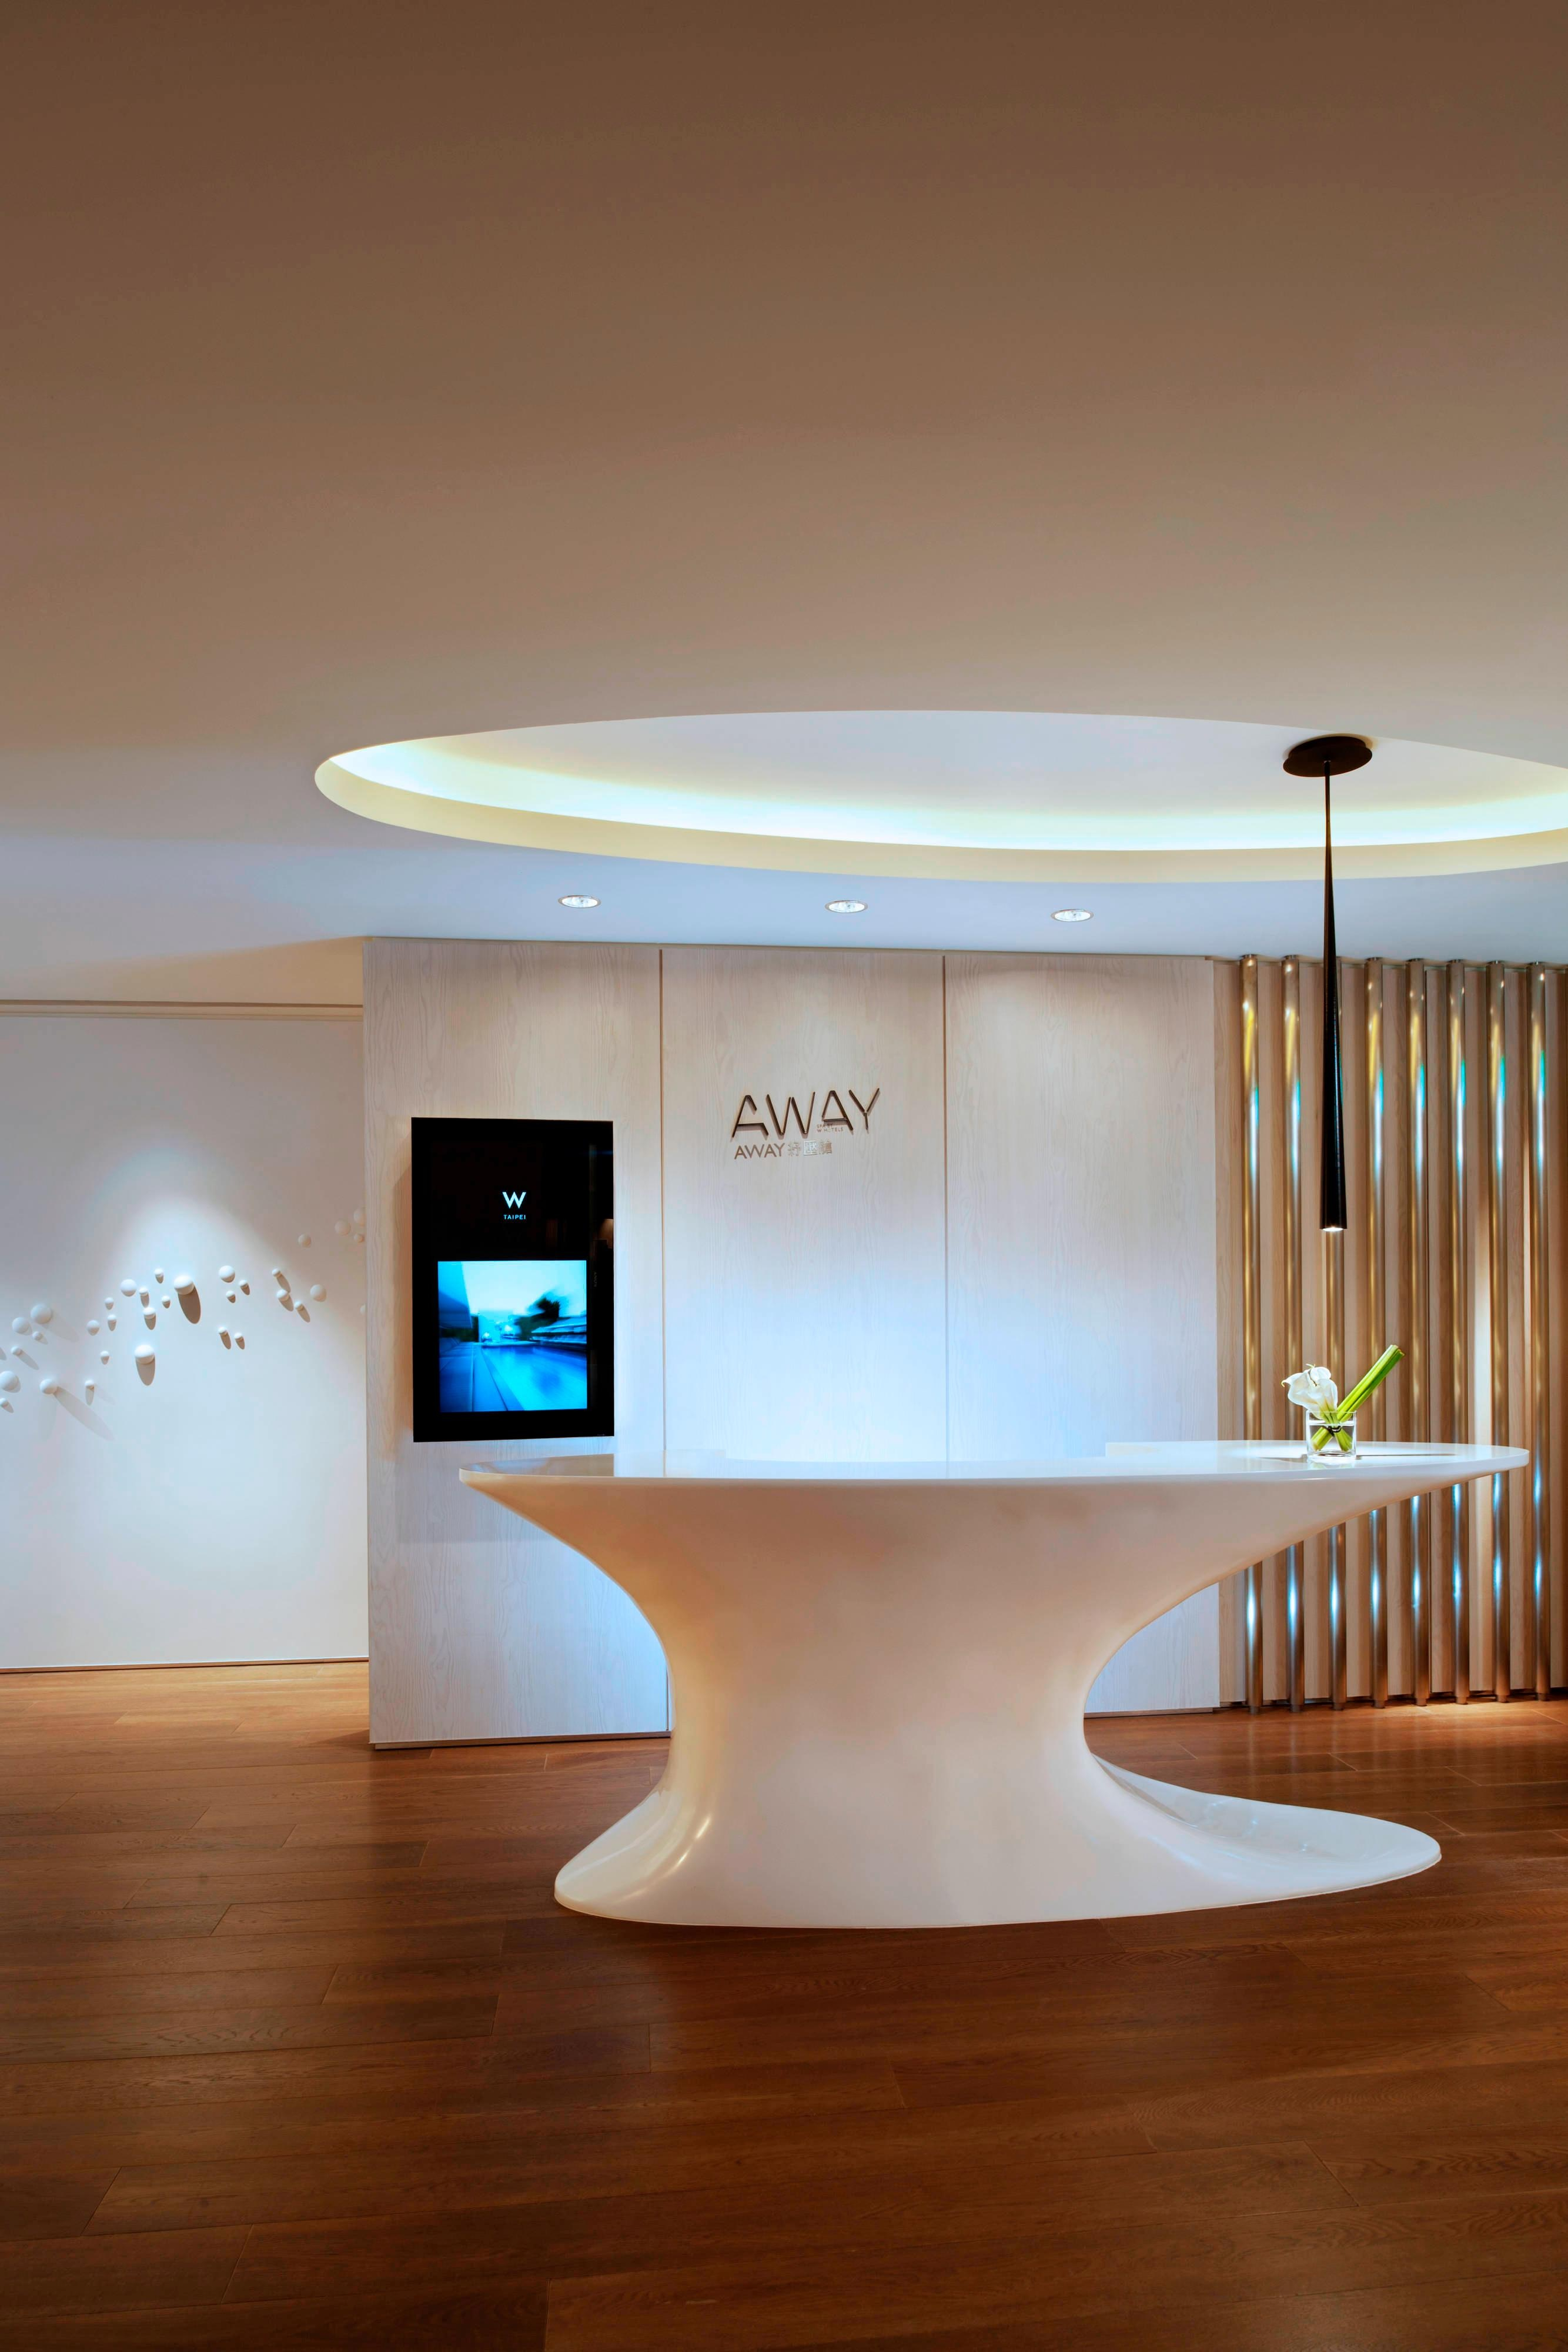 AWAY Spa―Reception